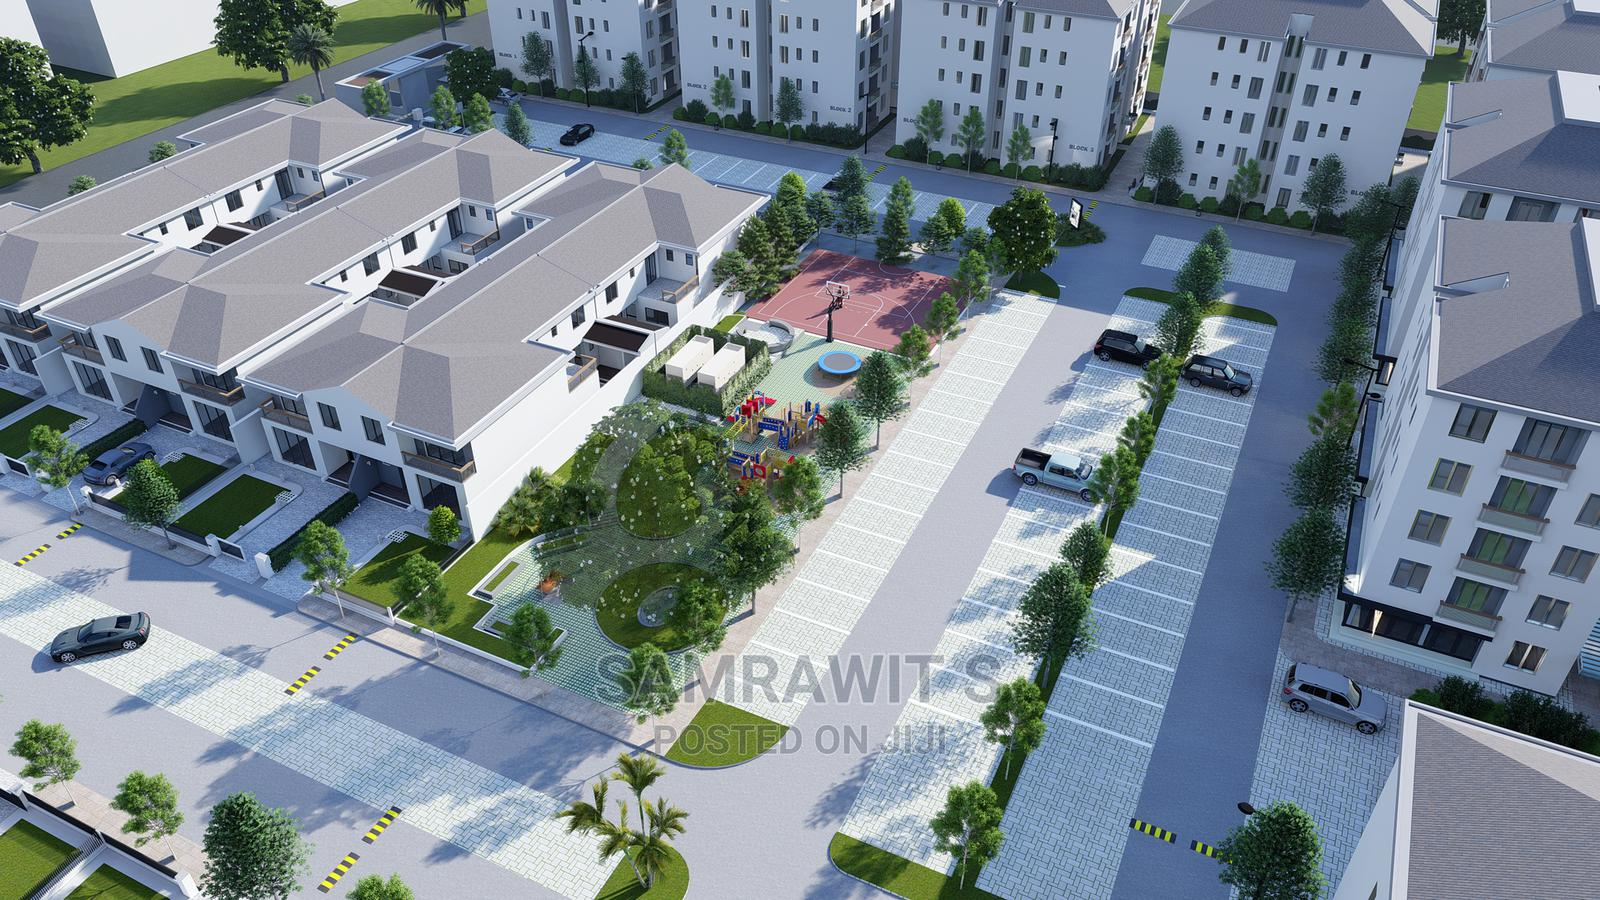 3bdrm Apartment in Apmg, Bole for Sale | Houses & Apartments For Sale for sale in Bole, Addis Ababa, Ethiopia